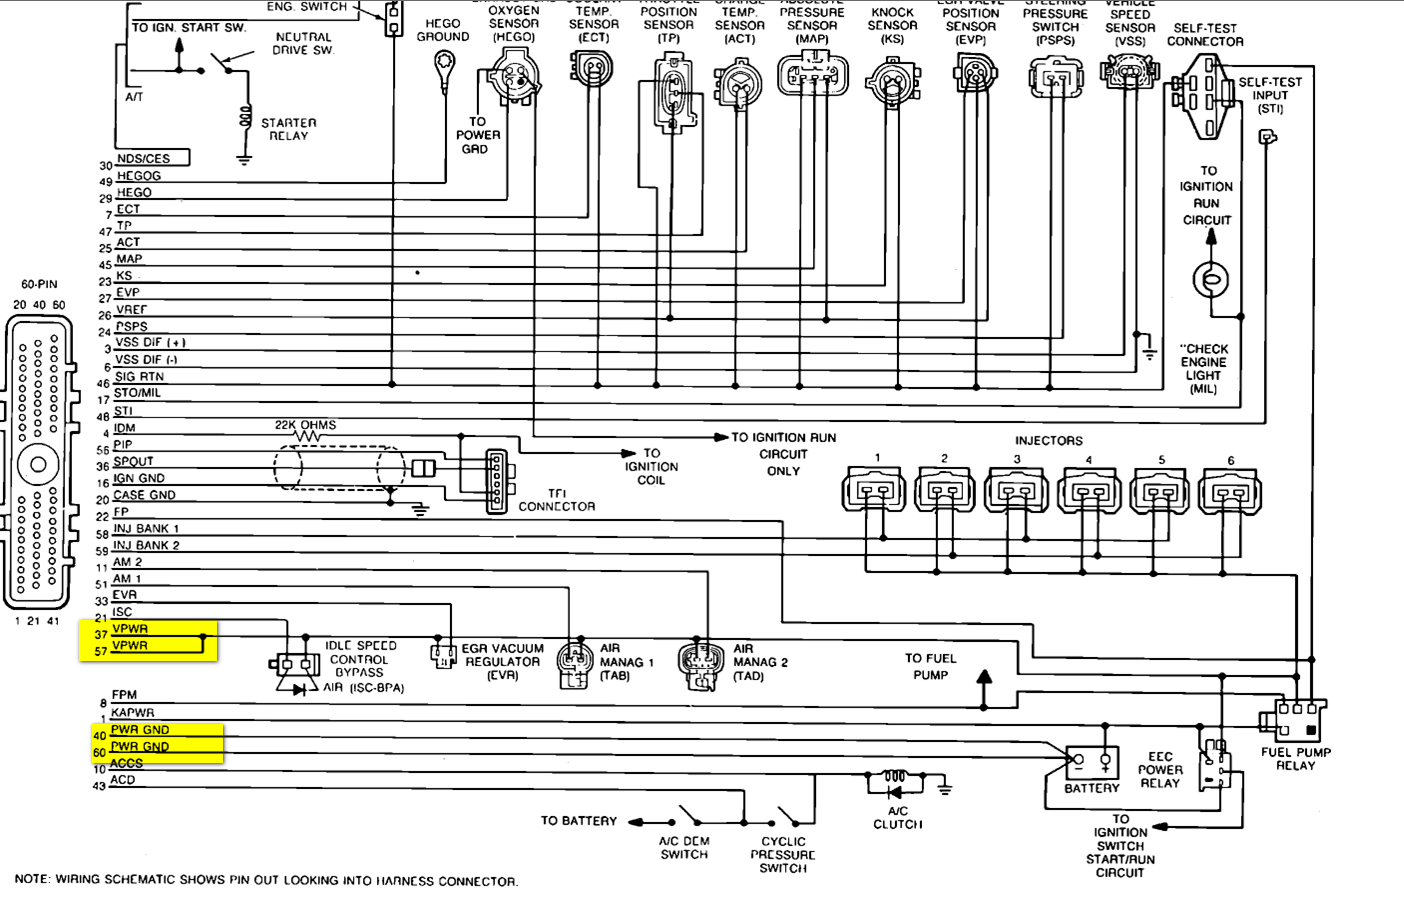 B9C043 92 F 350 Wiring Diagram Free Picture | Wiring Resources on taurus wiring diagram, k5 blazer wiring diagram, fusion wiring diagram, crown victoria wiring diagram, windstar wiring diagram, civic wiring diagram, bronco wiring diagram, mustang wiring diagram, model a wiring diagram, f250 super duty wiring diagram, f150 wiring diagram,